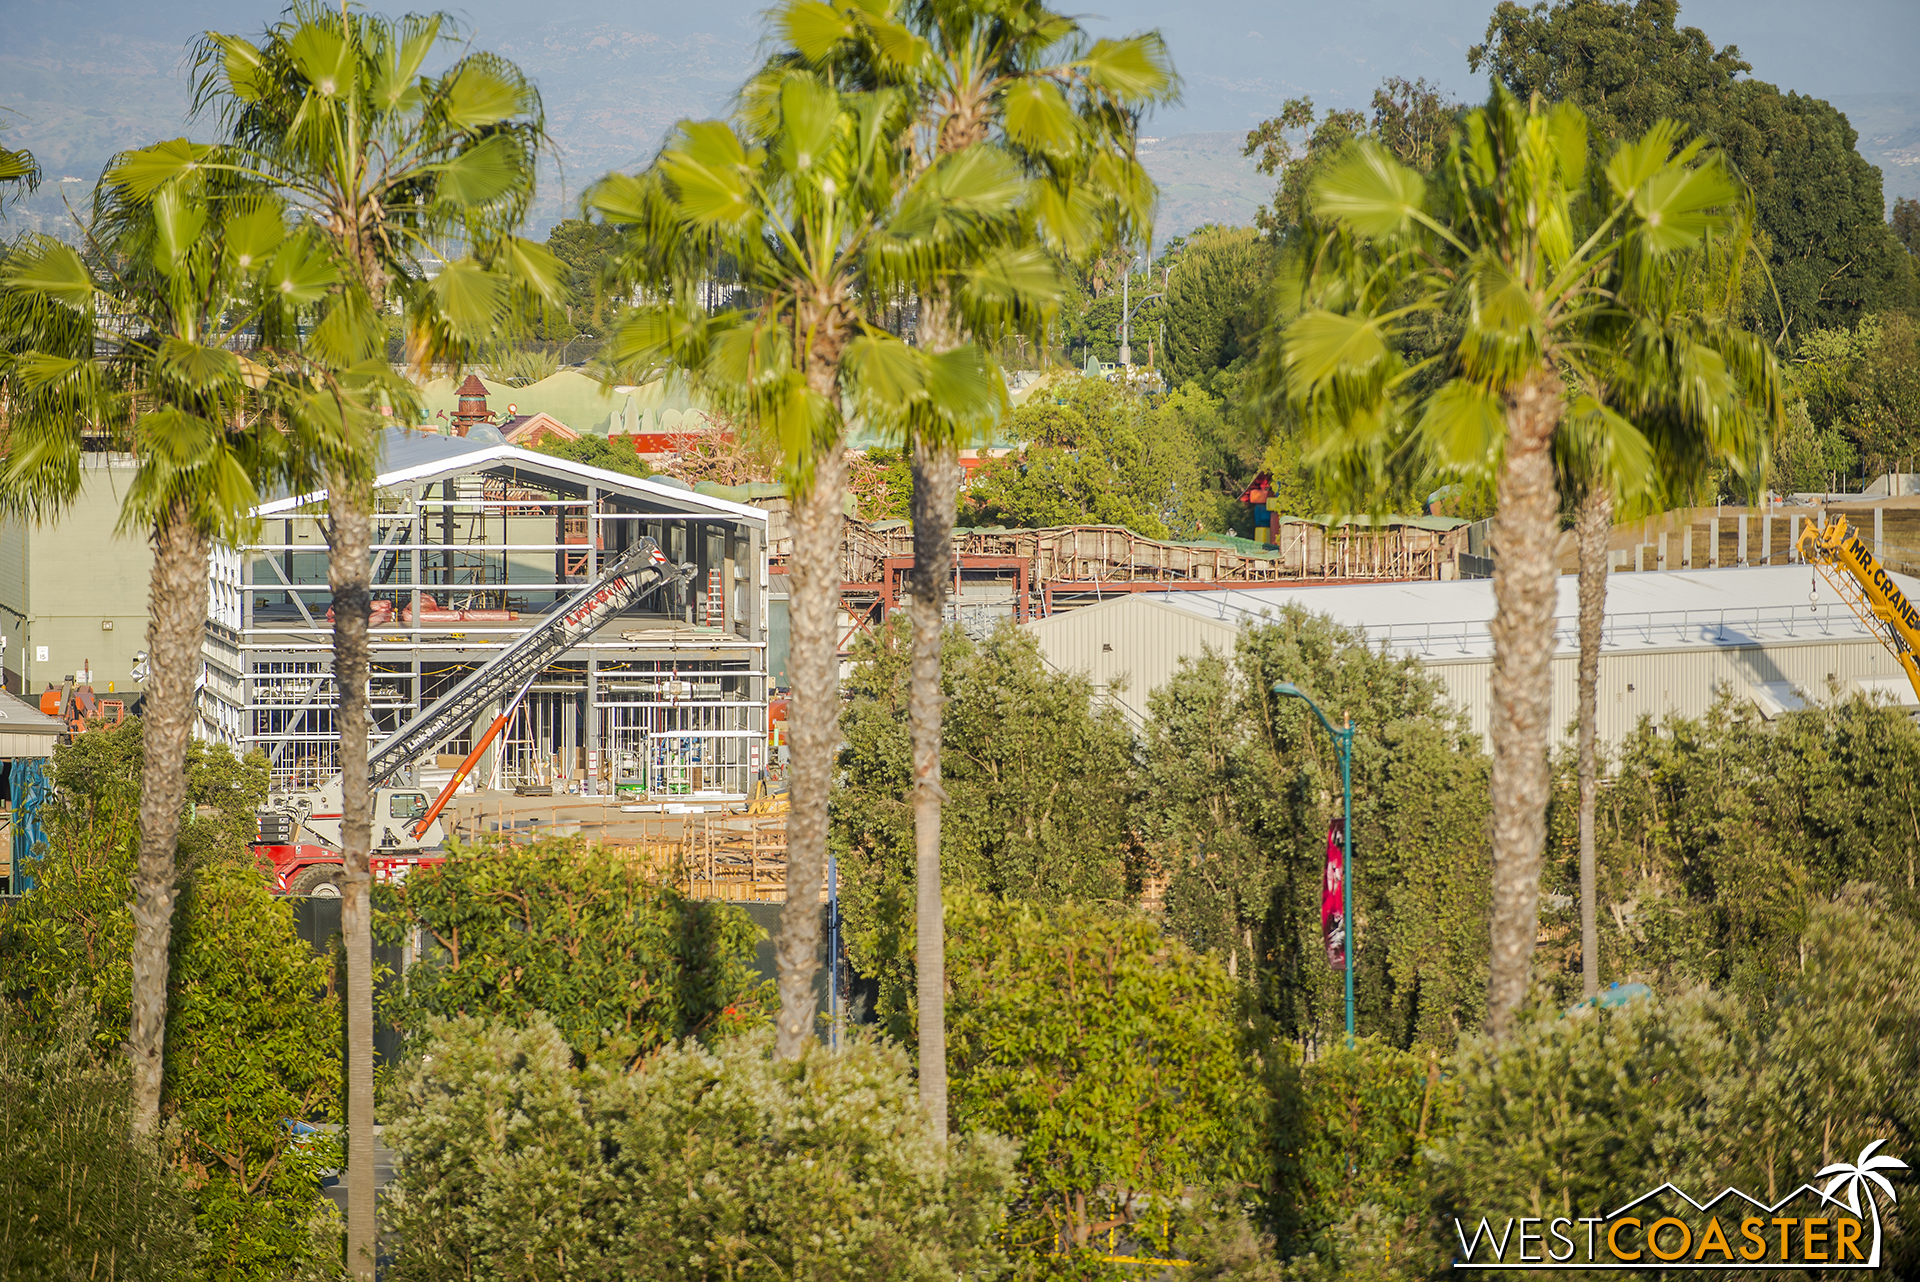 Lastly, though I've been taking a ton of photos of this ultimately inconsequential (to guests) backstage building, work on the Millennium Falcon attraction has been going on this whole time.  It's right in this shot if you know what to look for.  Unfortunately, the majority of the ride footprint is literally either obscured by the trees along Disneyland Drive or by the First Order show building, depending on the angle.  The ride is still grading and foundation prep right now.  It will probably get more obvious once it goes vertical.